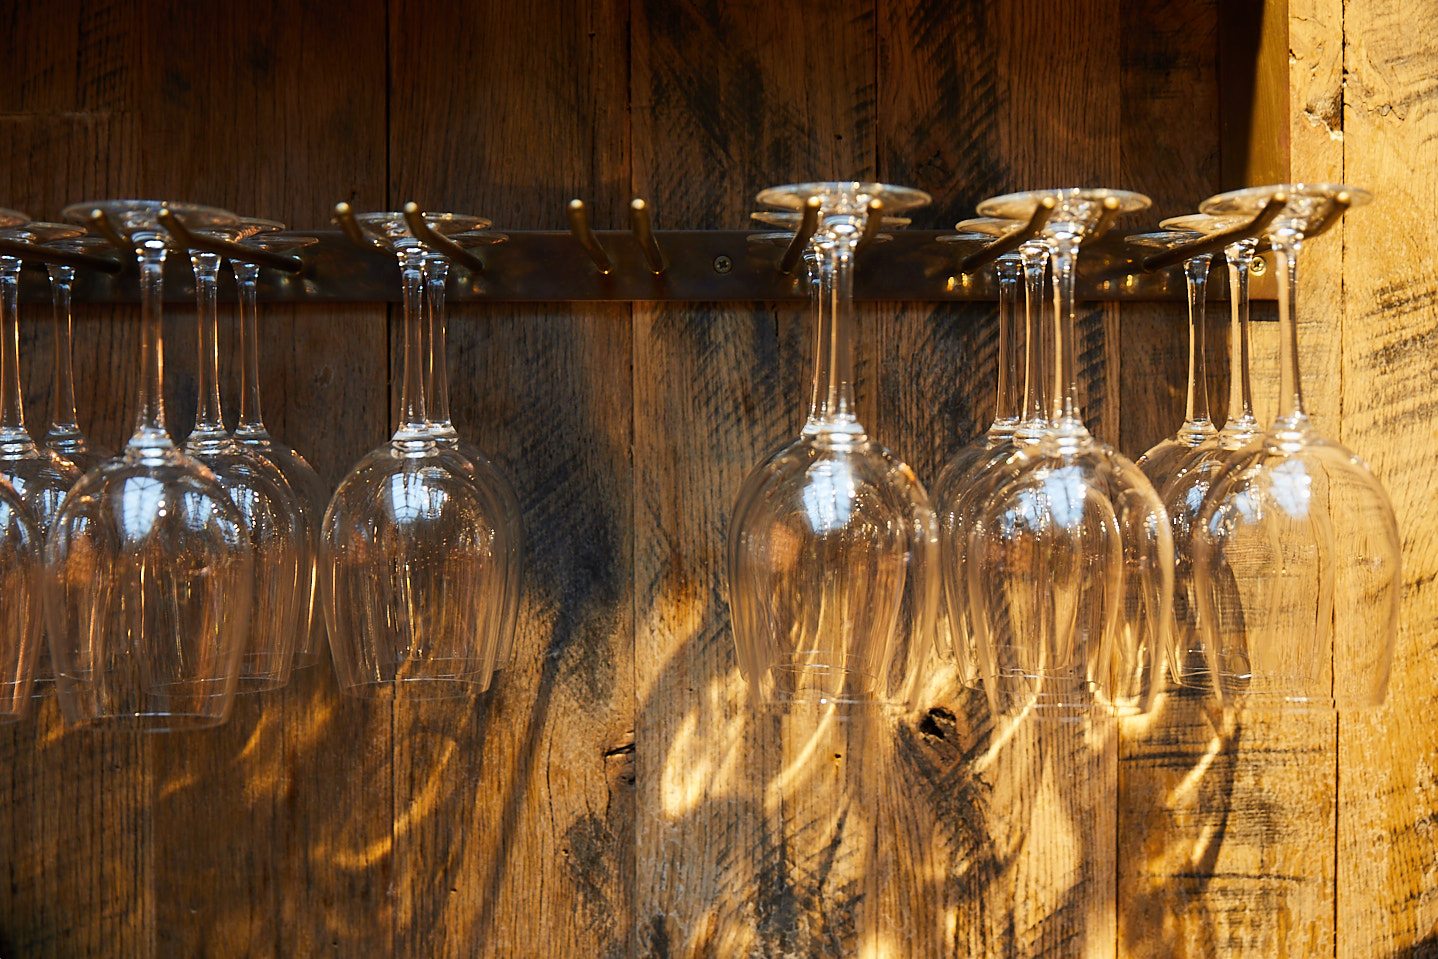 Wine glasses hang from metal rails with reclaimed clad wall